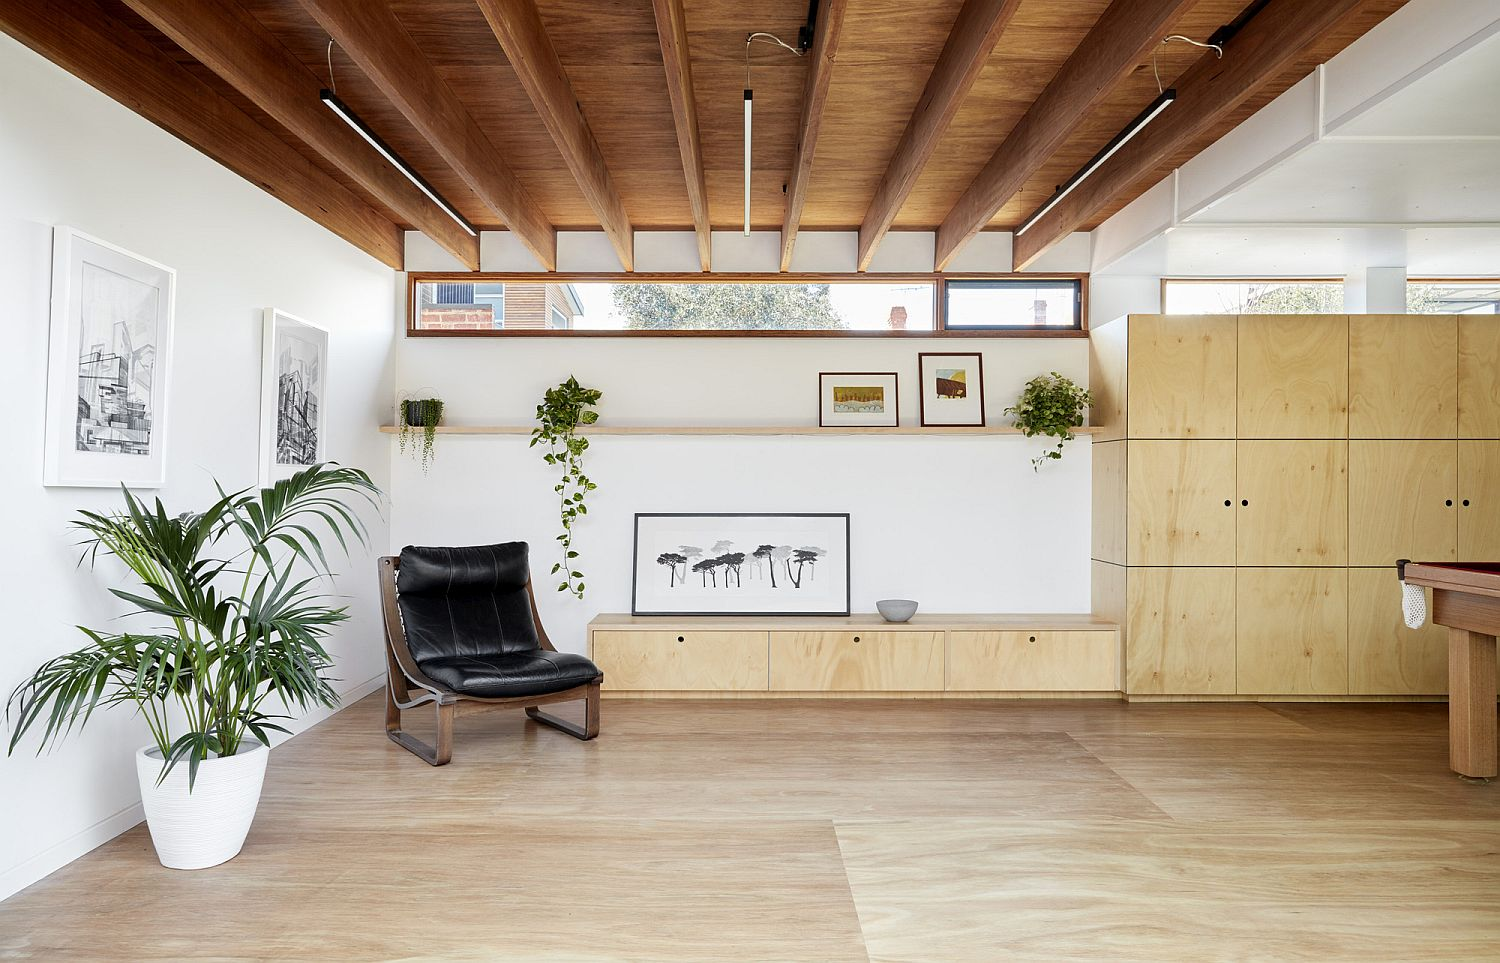 Custom-wooden-shelving-and-cabinets-for-the-modern-interior-in-white